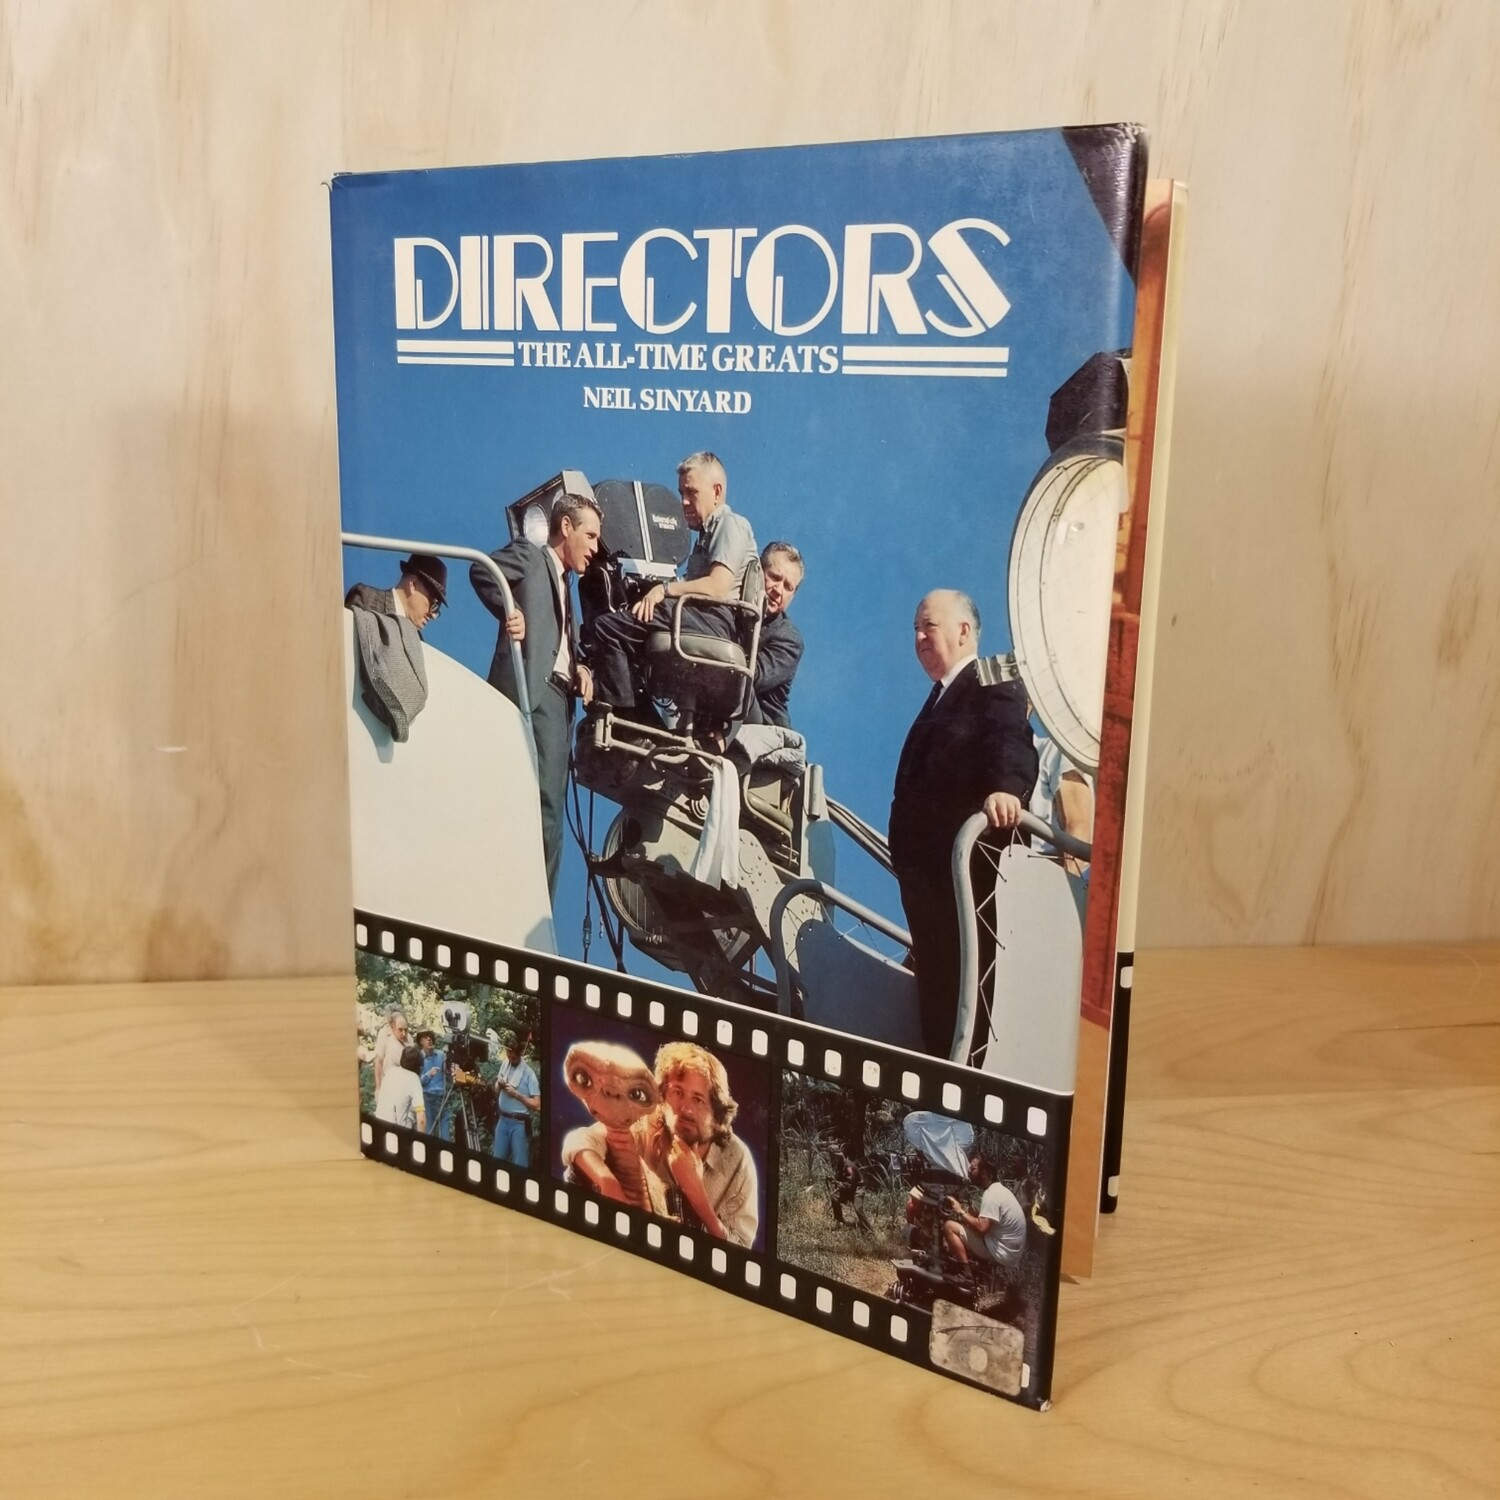 Directors - The All Time Greats